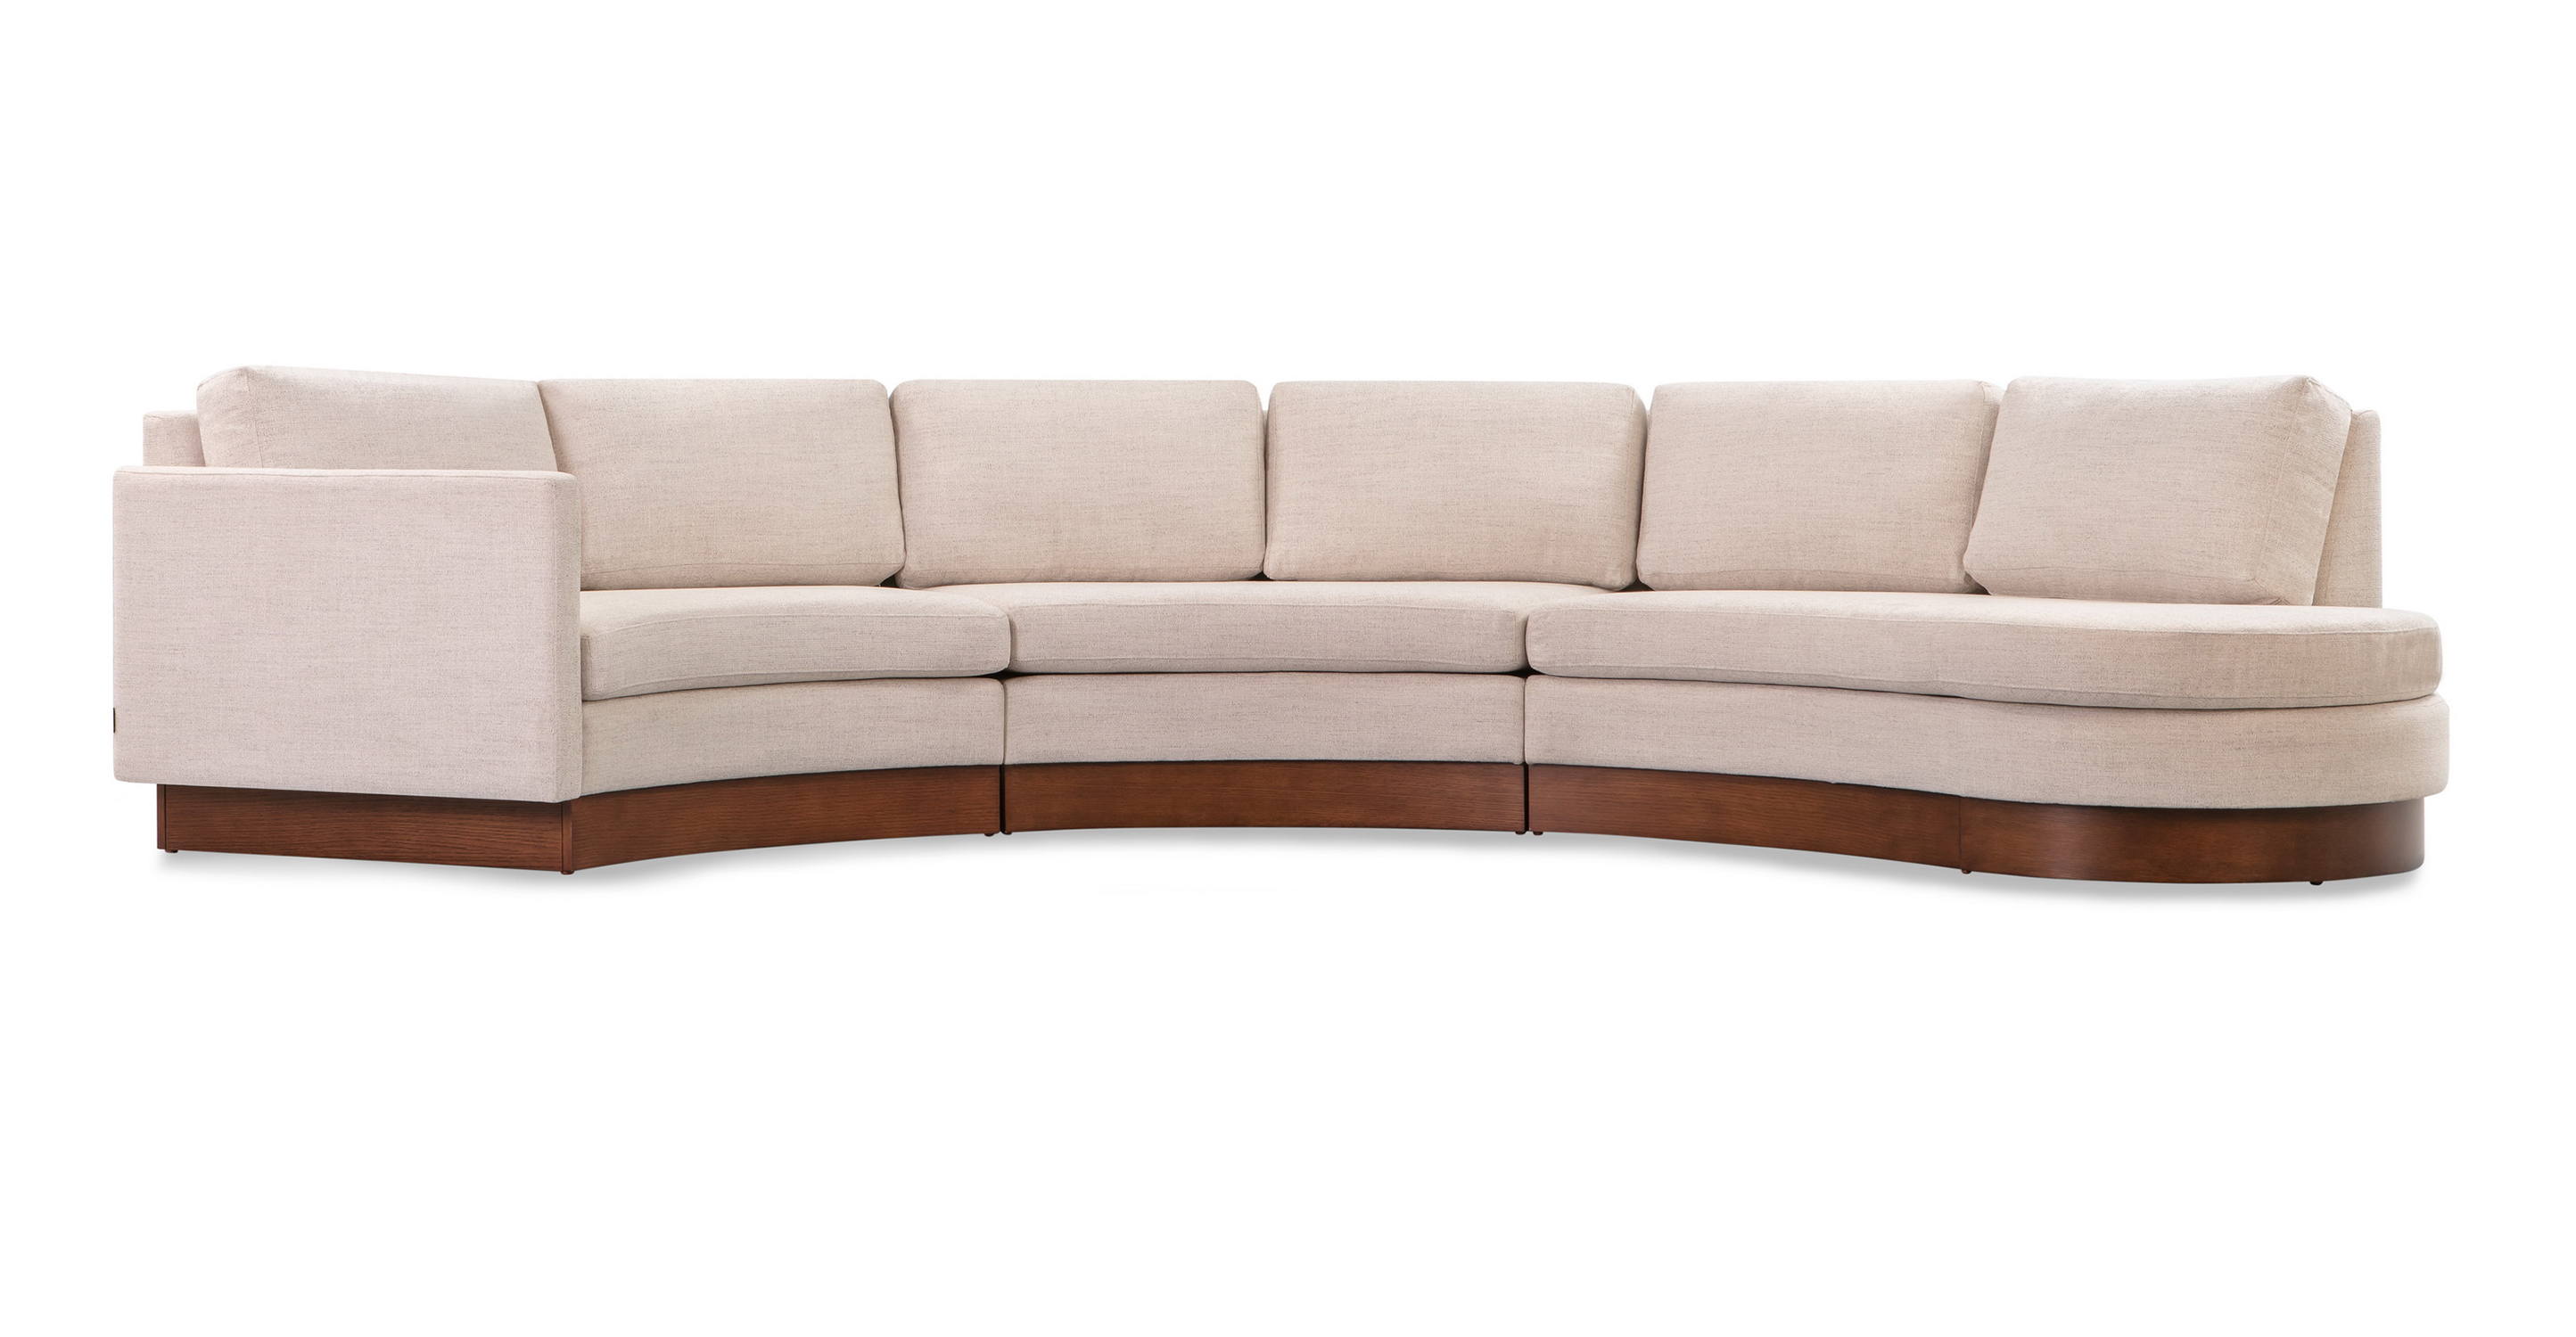 "Taylor 123"" Modular Fabric Sectional, Oyster Woven"